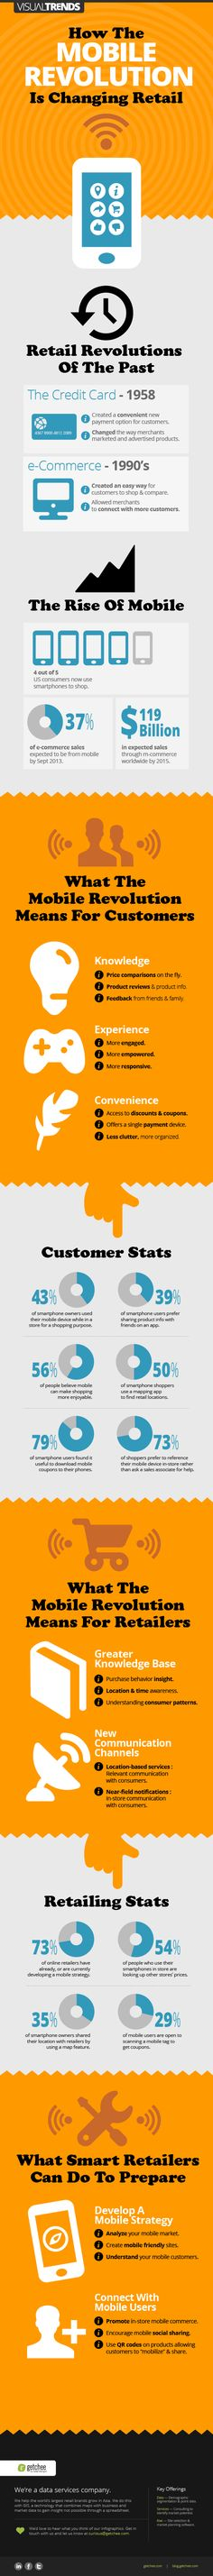 How the #Mobile Revolution is Changing Retail {infographic}